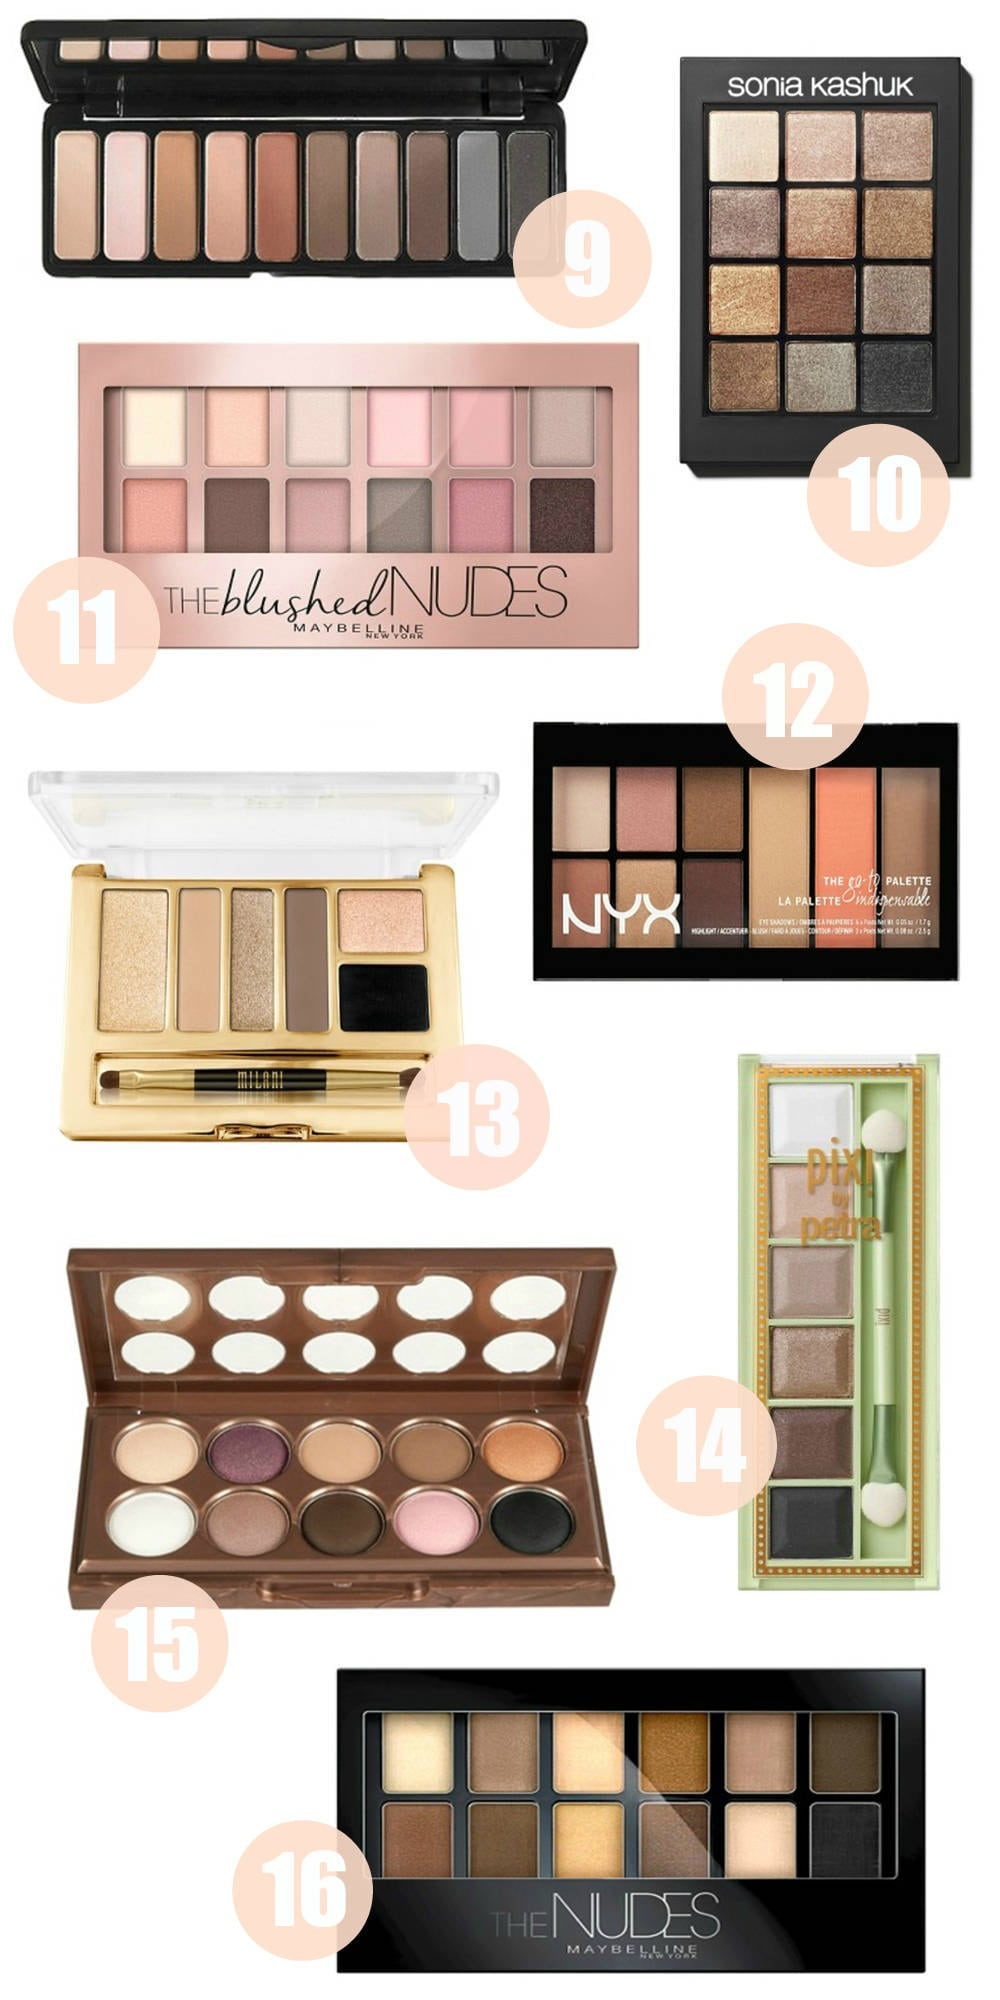 Beauty blogger Mash Elle shares her favorite eyeshadow palettes under $20